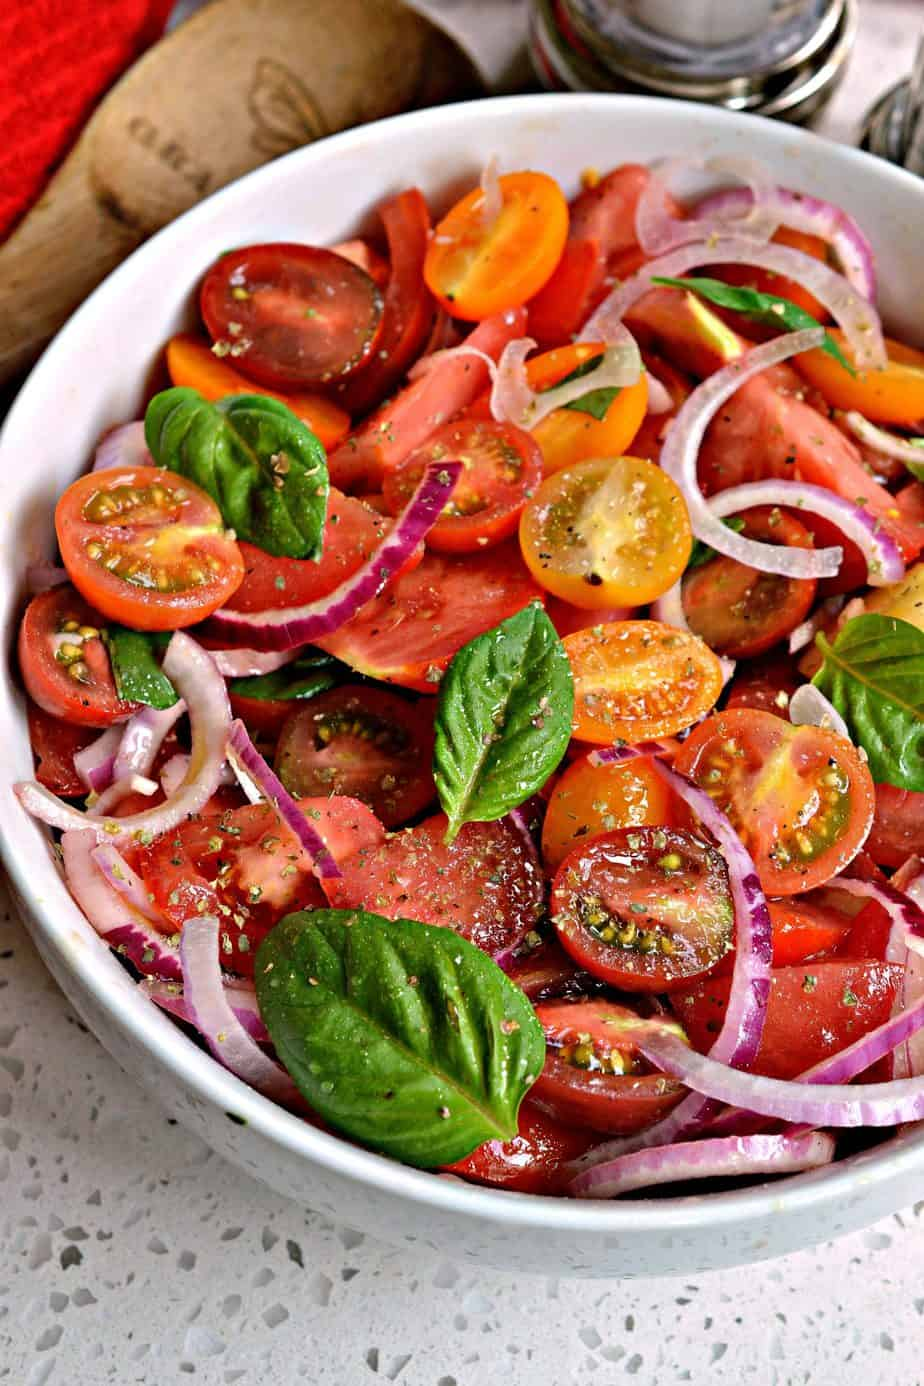 This Tomato Salad combines the best of summer's harvest with sun-ripened tomatoes, sweet red onions, garlic and fresh basil.